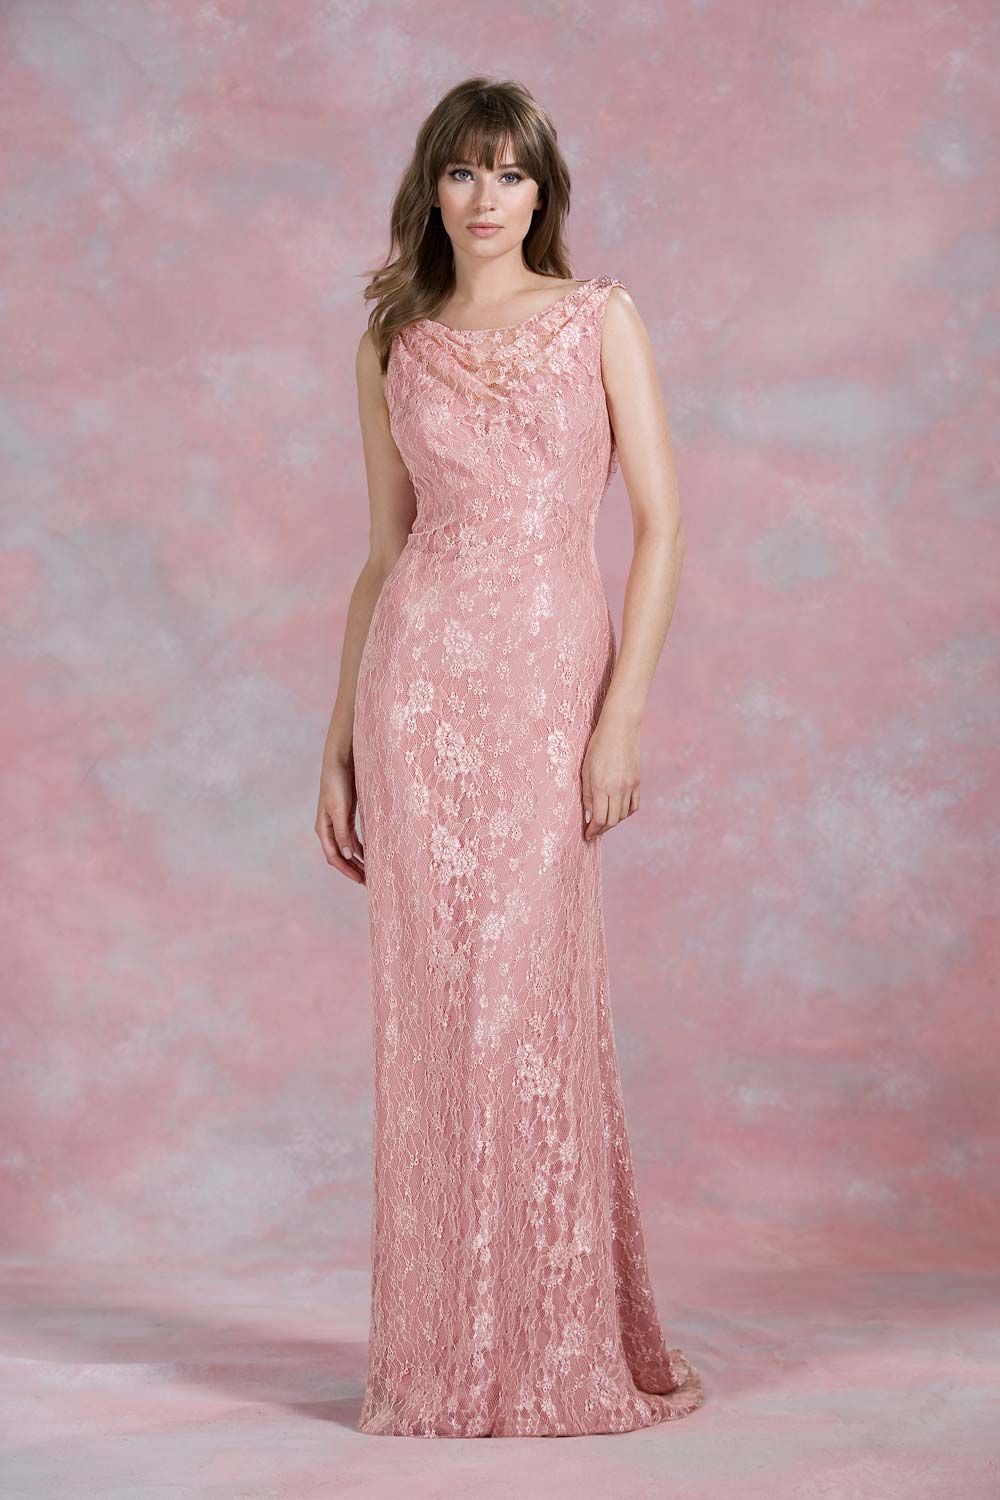 Pale Pink Bridesmaid Dresses: 19 Delightful Styles | Pale pink ...